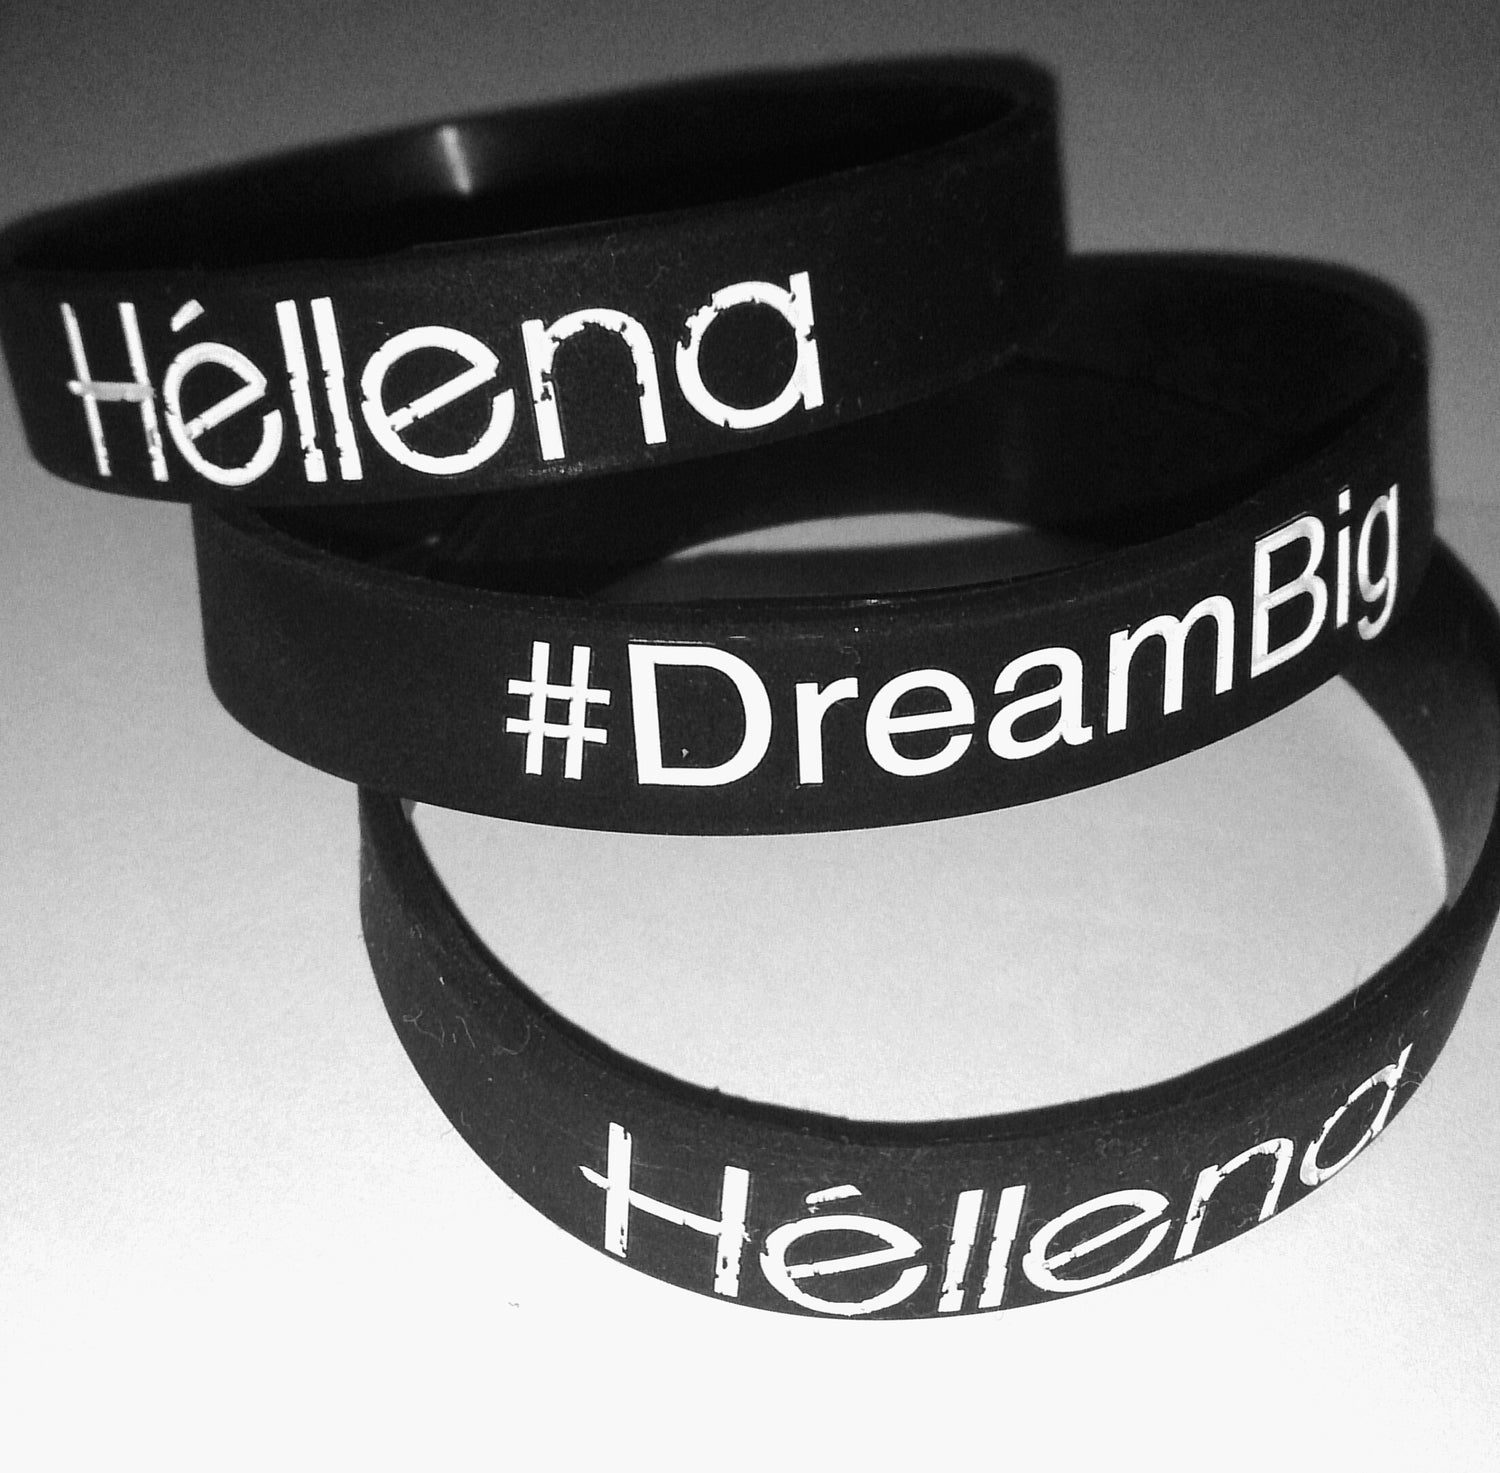 Image of Héllena Wristband